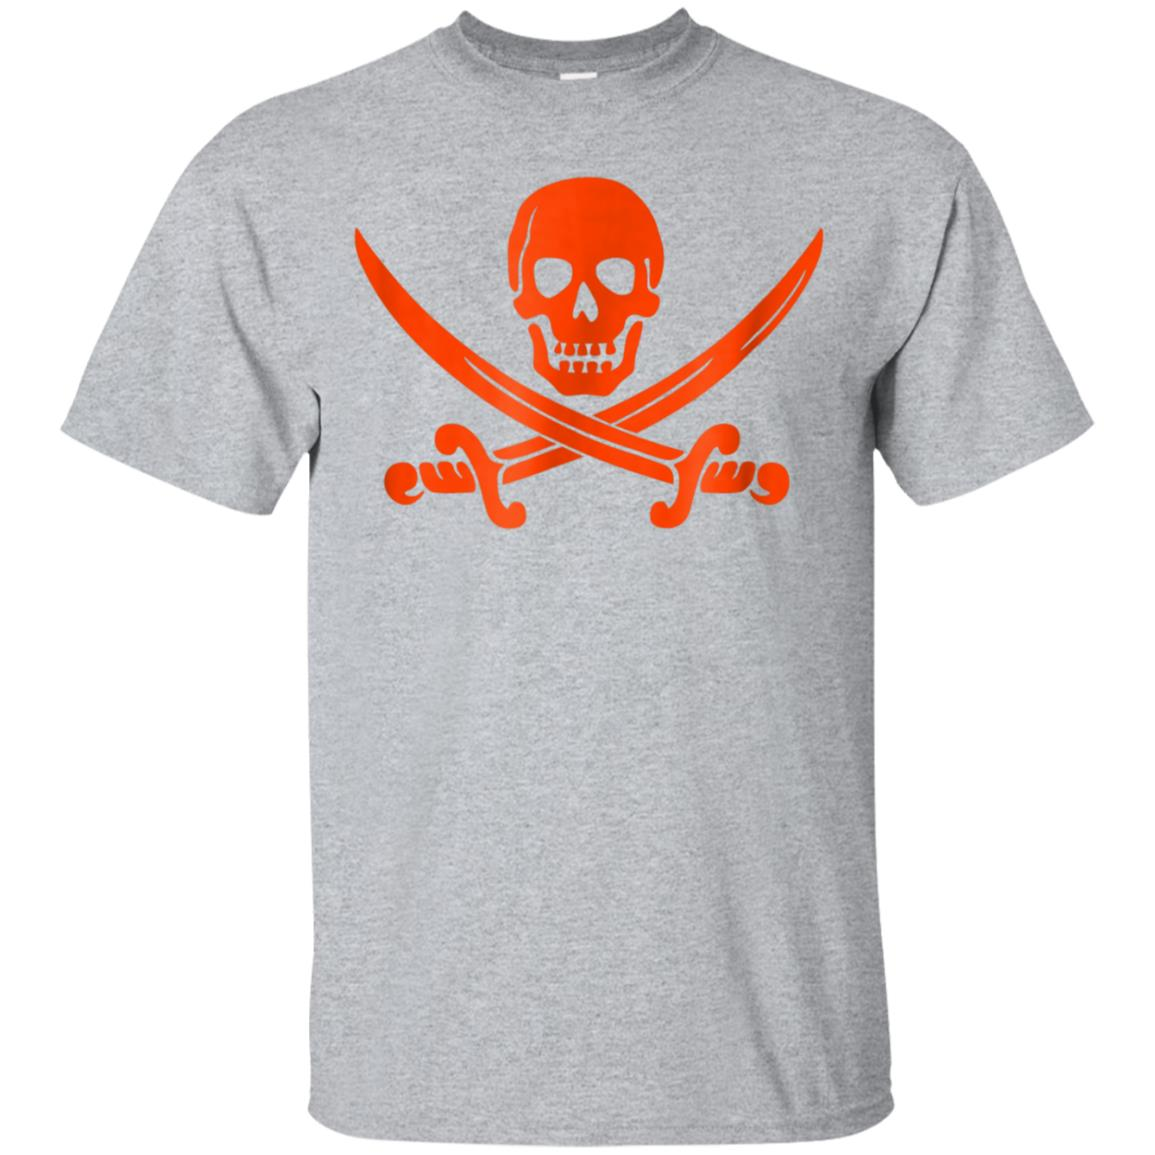 Pirate T-Shirt With Skull & Swords 99promocode